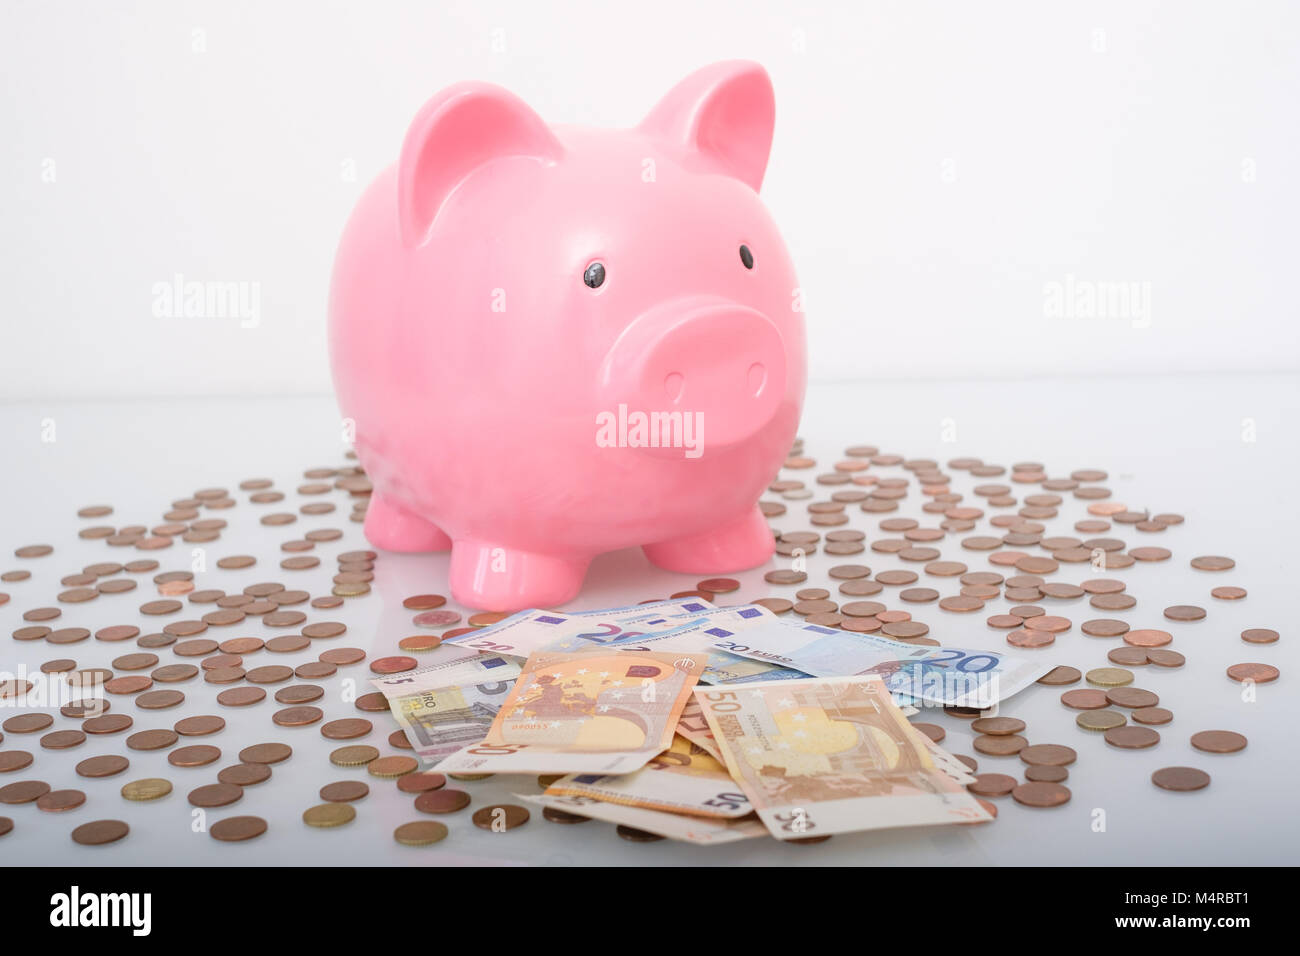 Savings concept. Pink piggy bank and coins isolated on white background - Stock Image